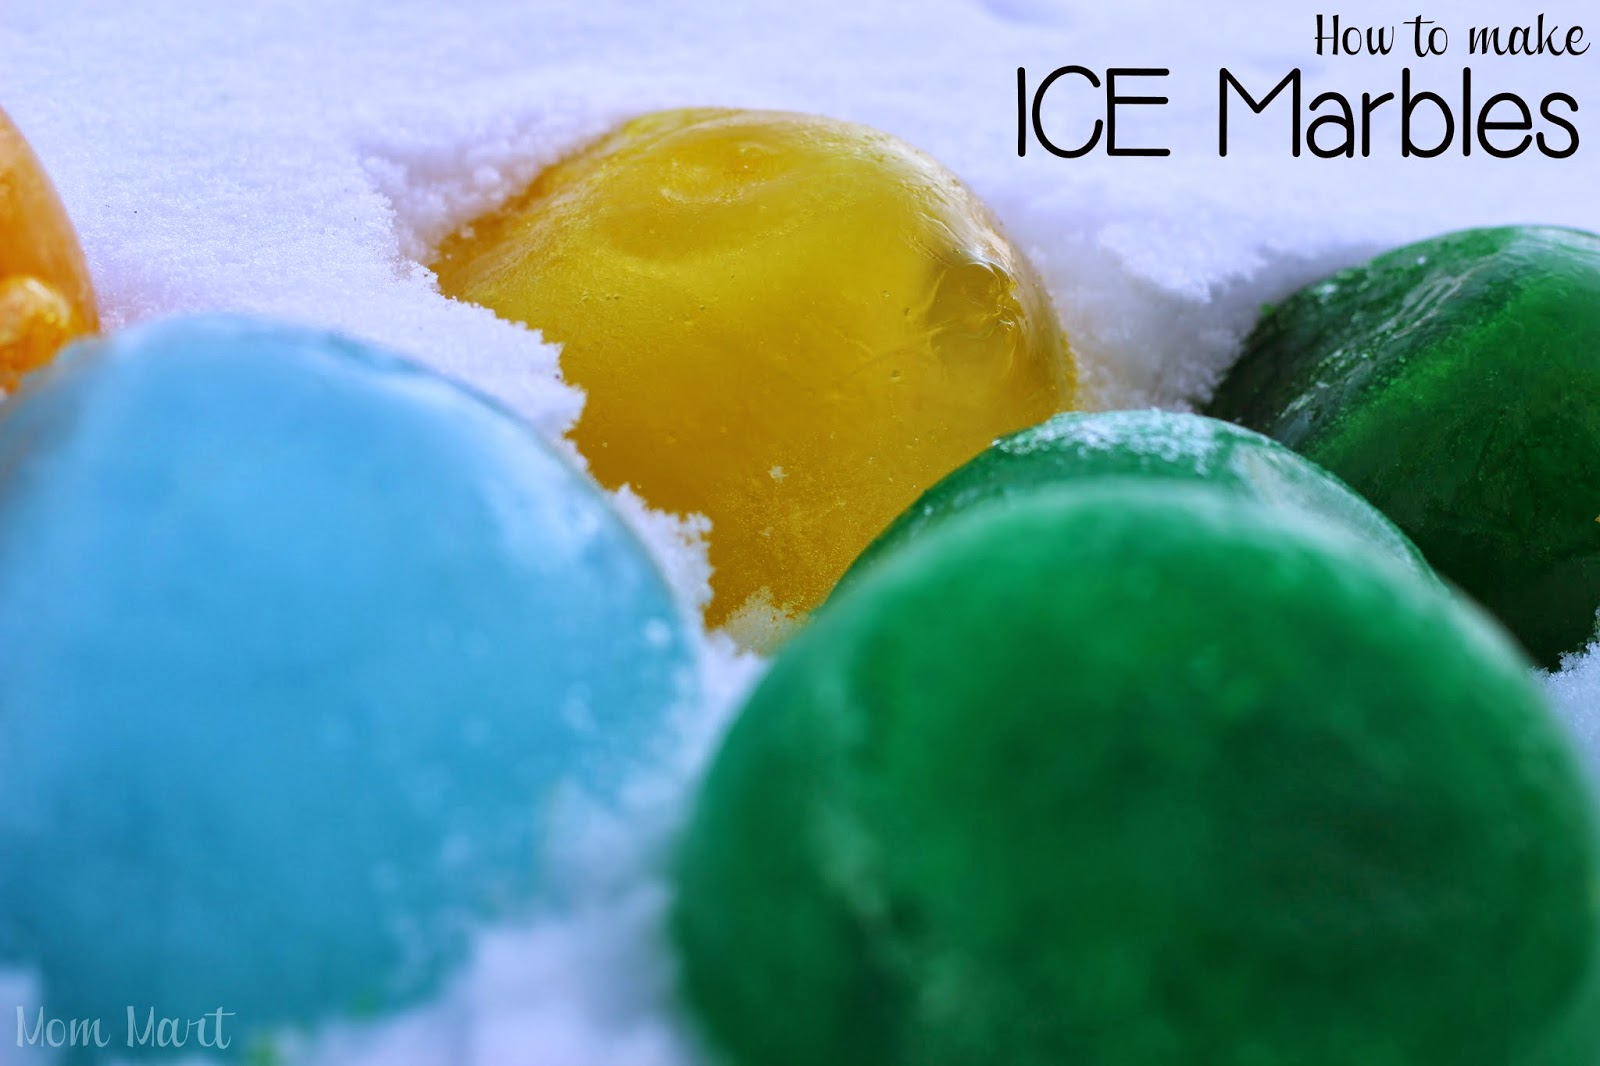 How to make ICE Marbles: A hands on Activity for children #CraftsForKids #KidCraft #Activity tutorial with game and science experiment.